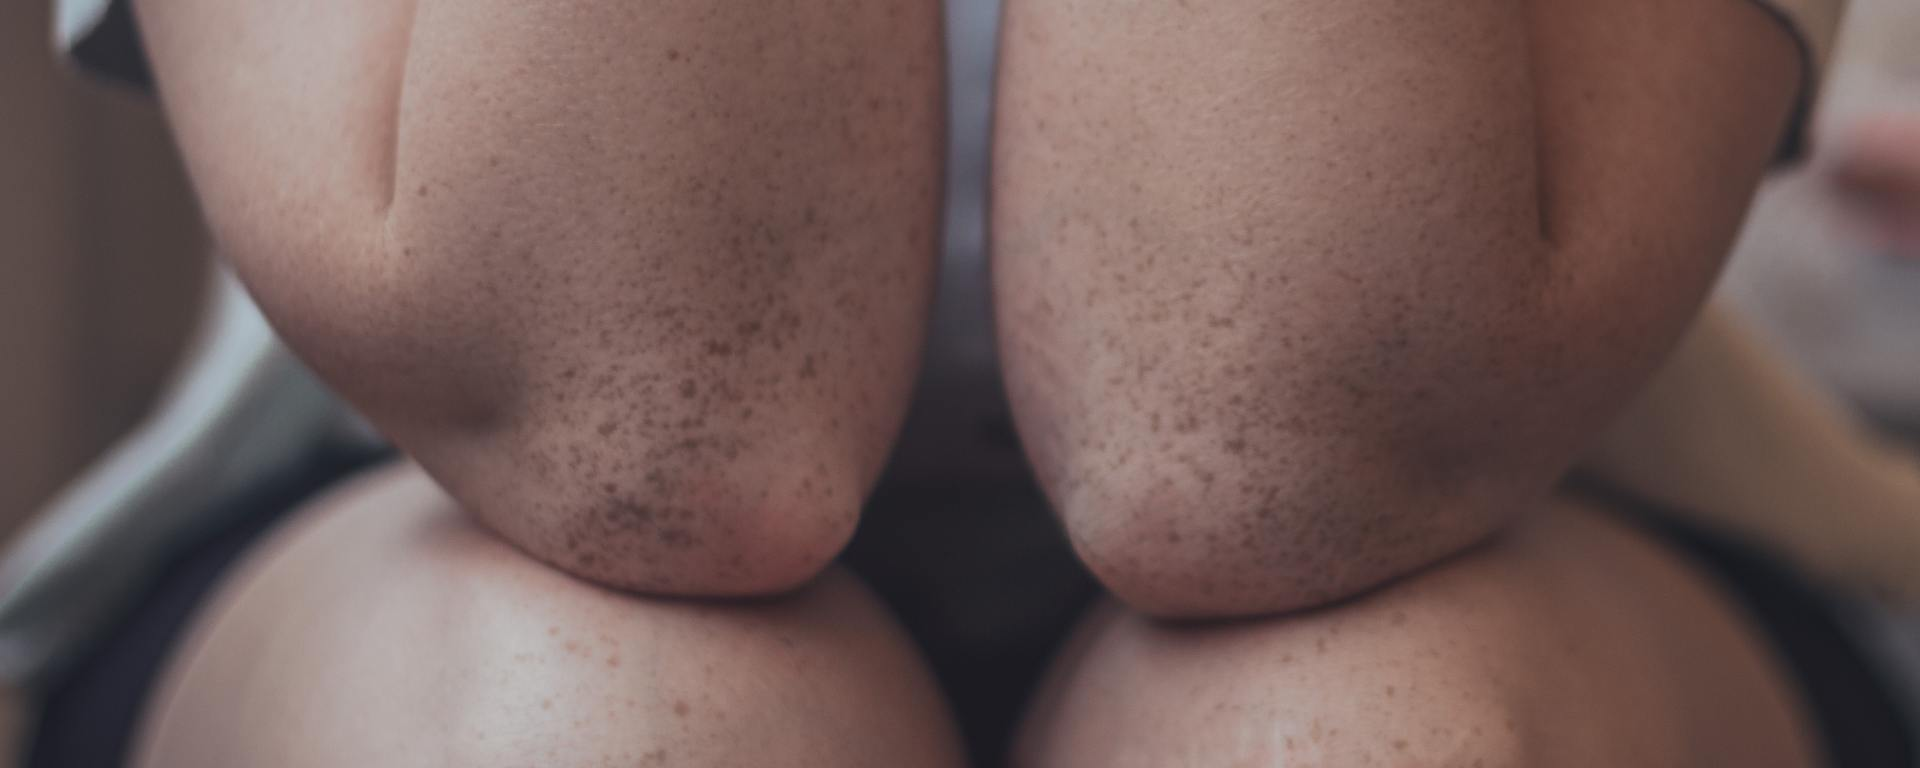 A person's bent elbows resting on their knees.